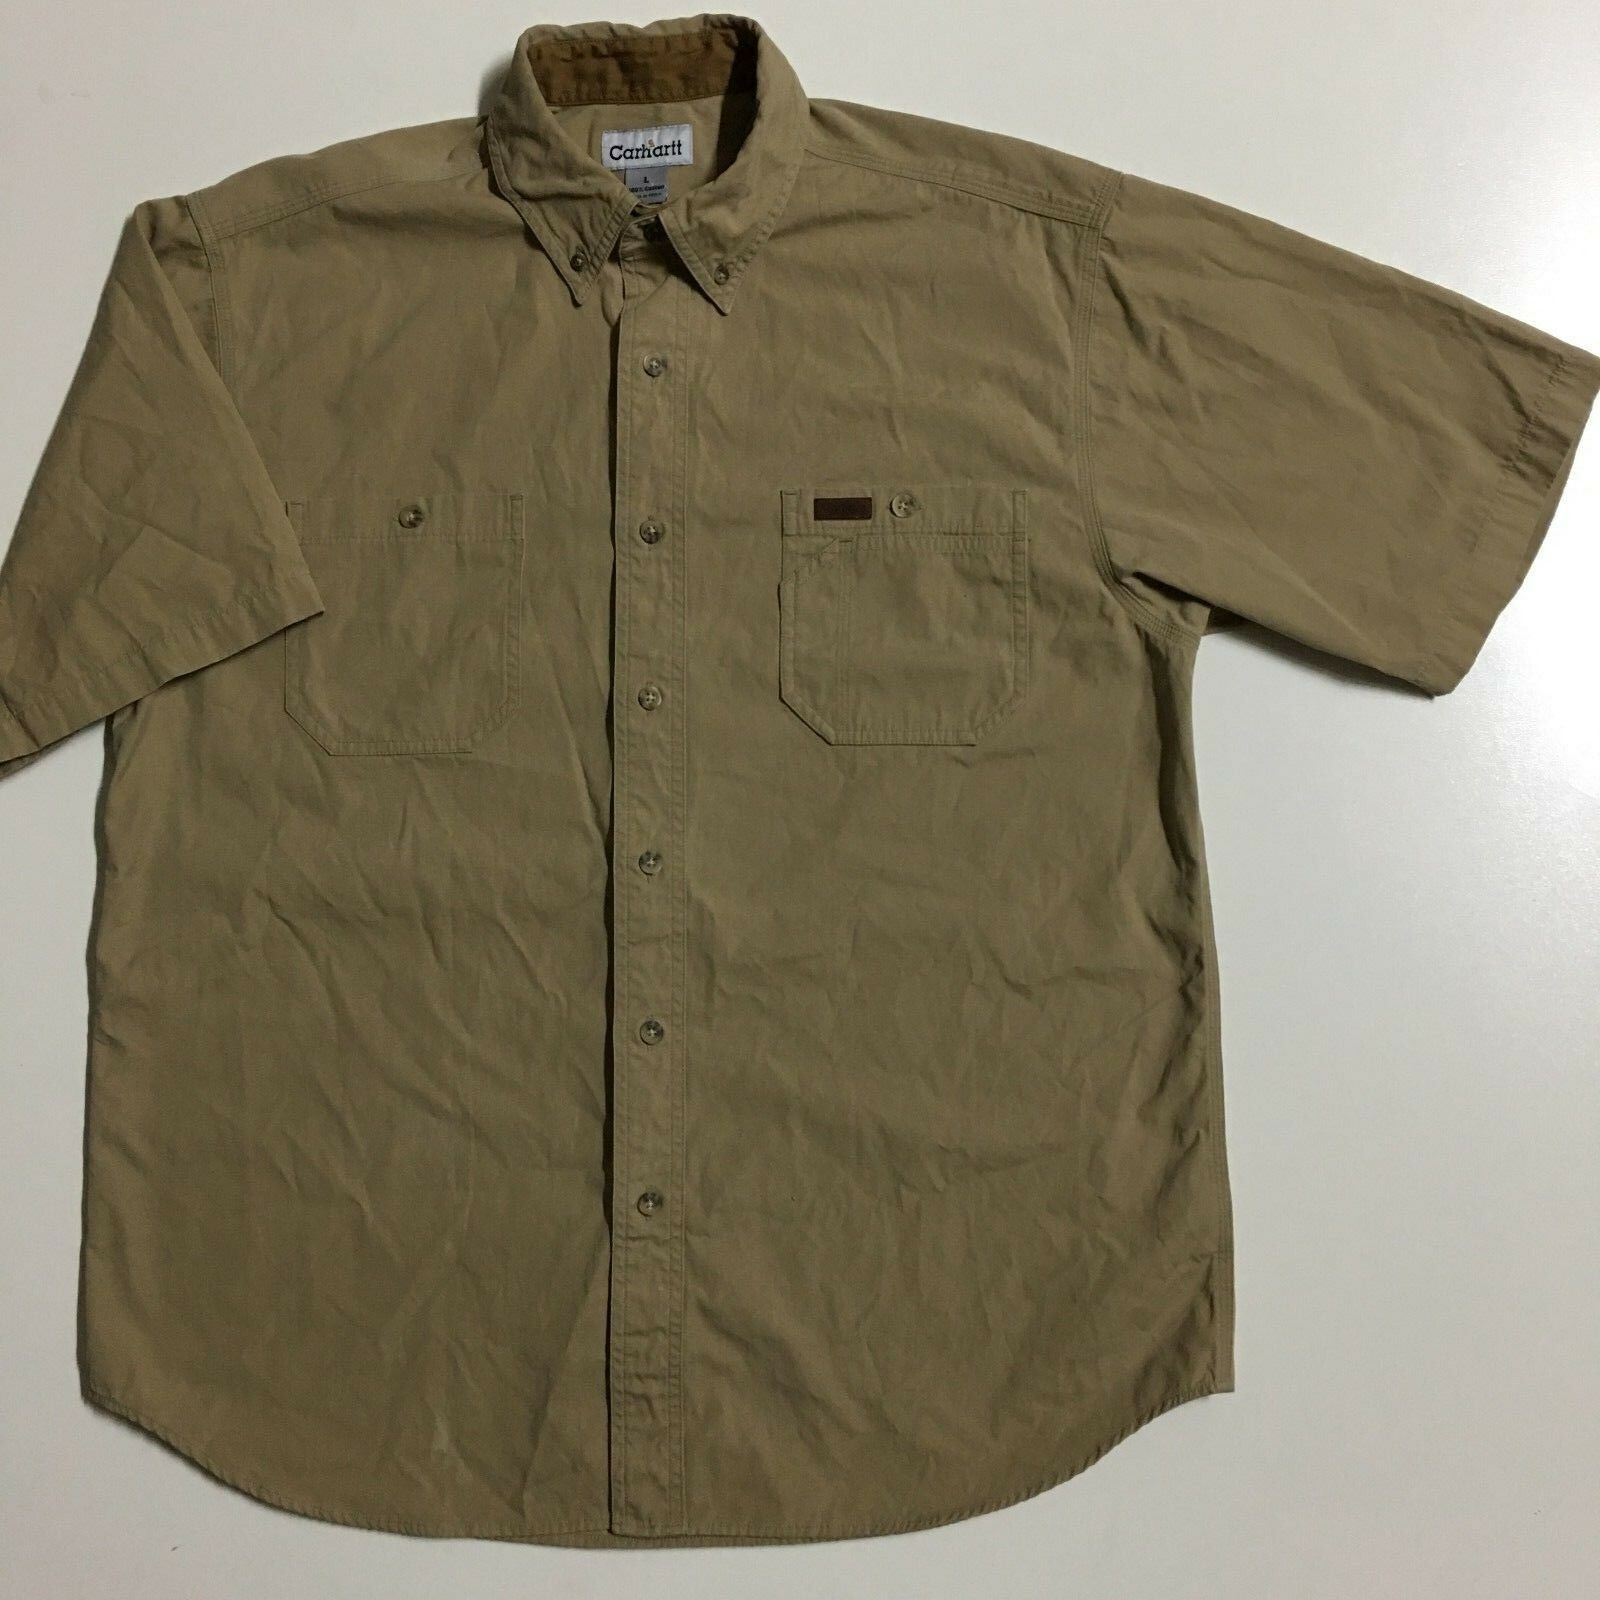 Carhartt Mens L Tan 100 Cotton Khaki Workwear Button Front Short Sleeve Shirt Ideas Of Carhartt Shirt Carharttshirt In 2020 Carhartt Shirts